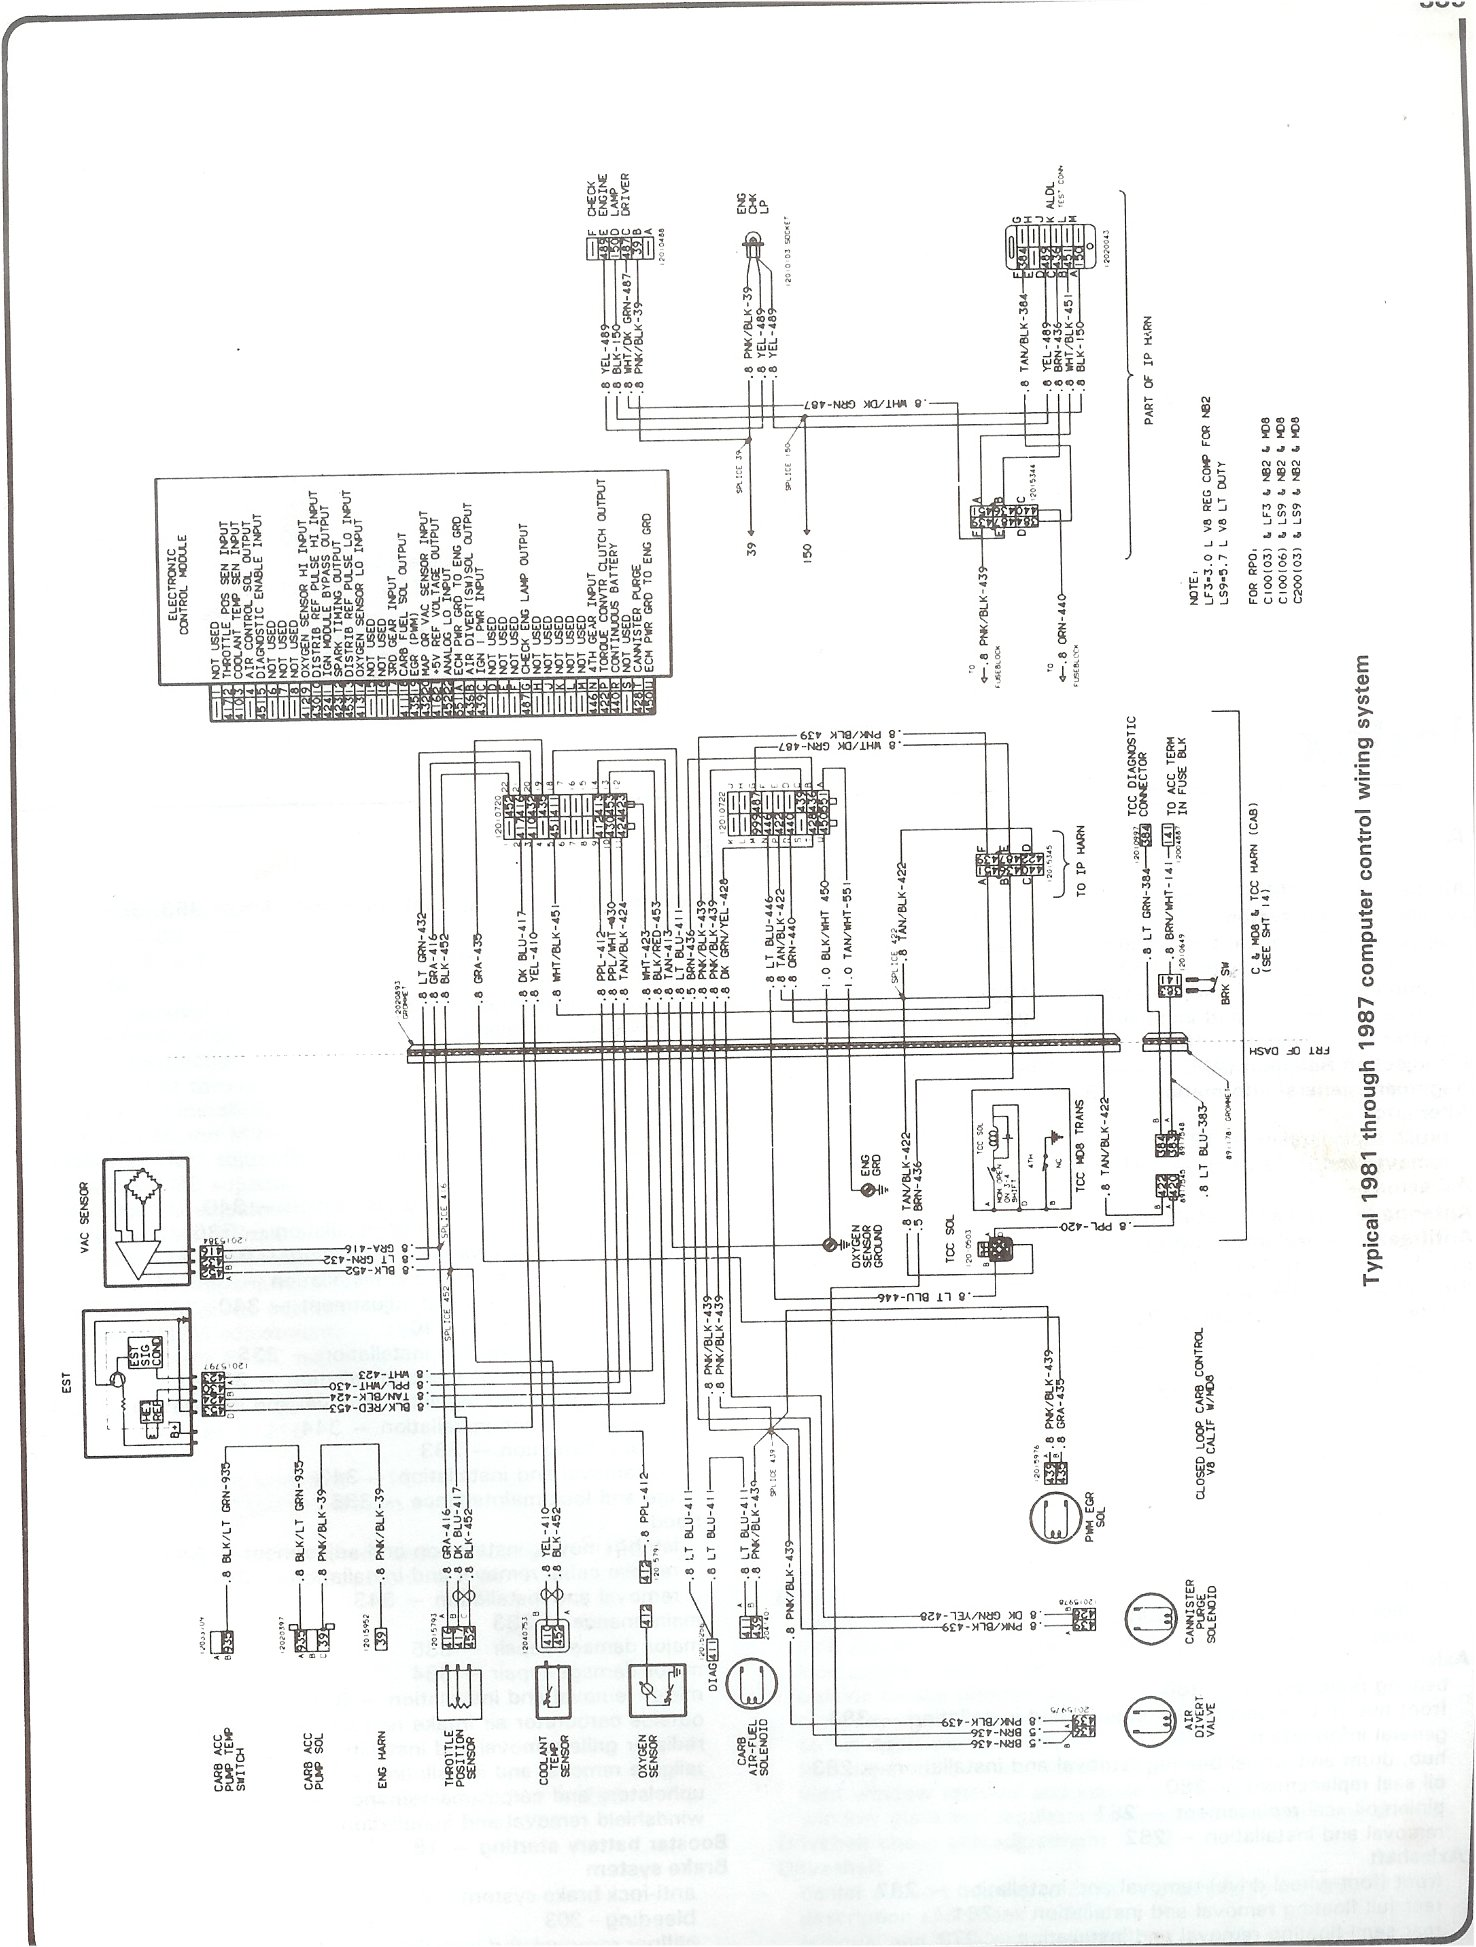 Complete 73 87 Wiring Diagrams 96 Chevy Blazer Wiring Diagram 1975 Chevy  Blazer Wiring Diagram